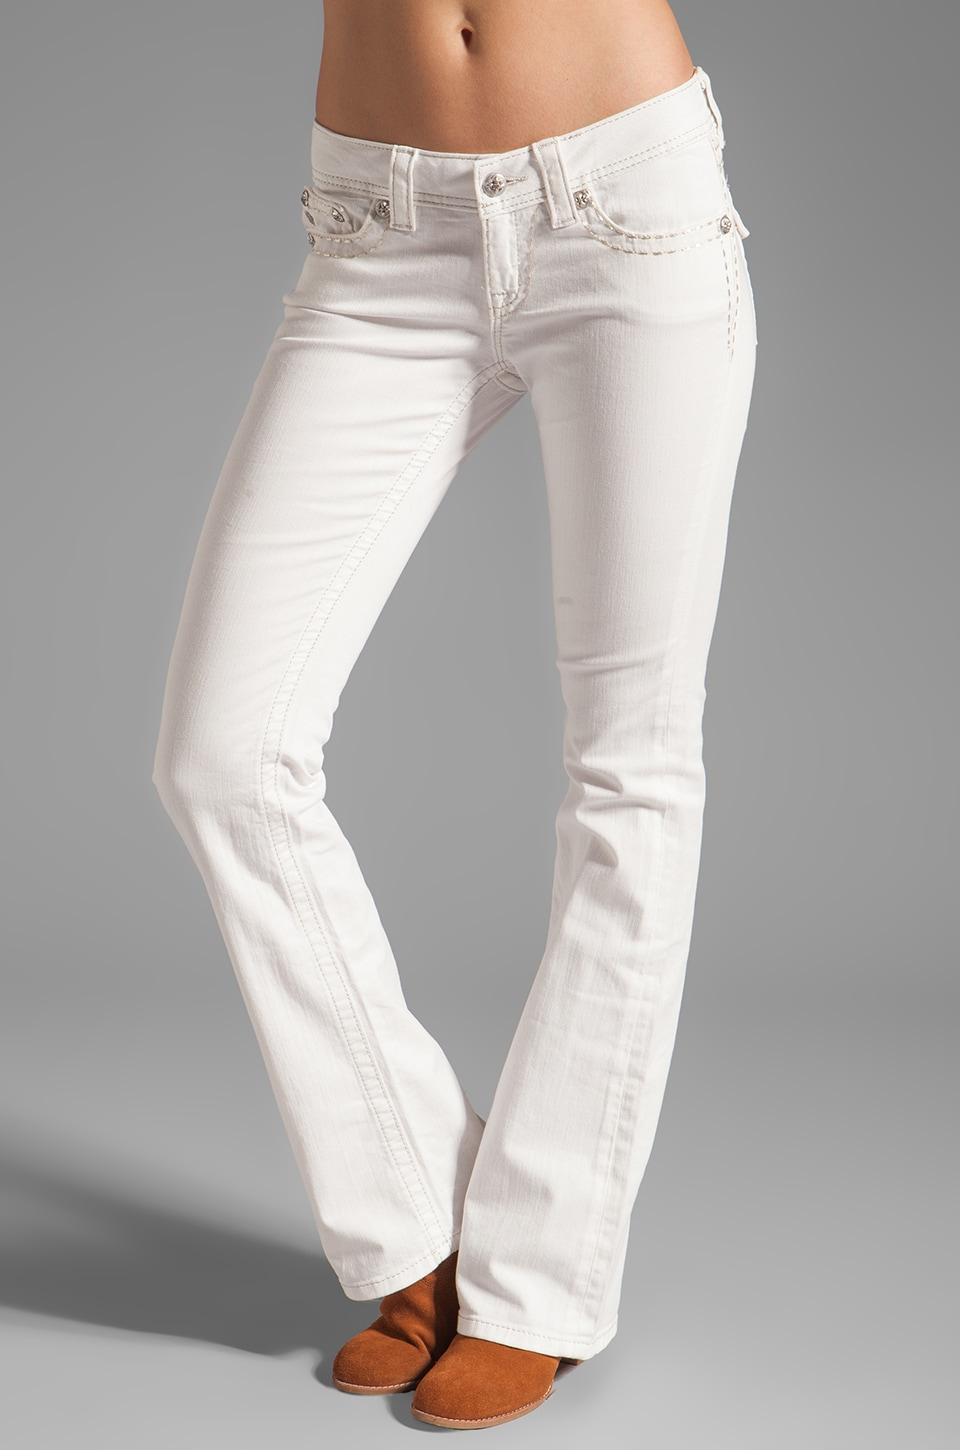 Miss Me Jeans Boot in White